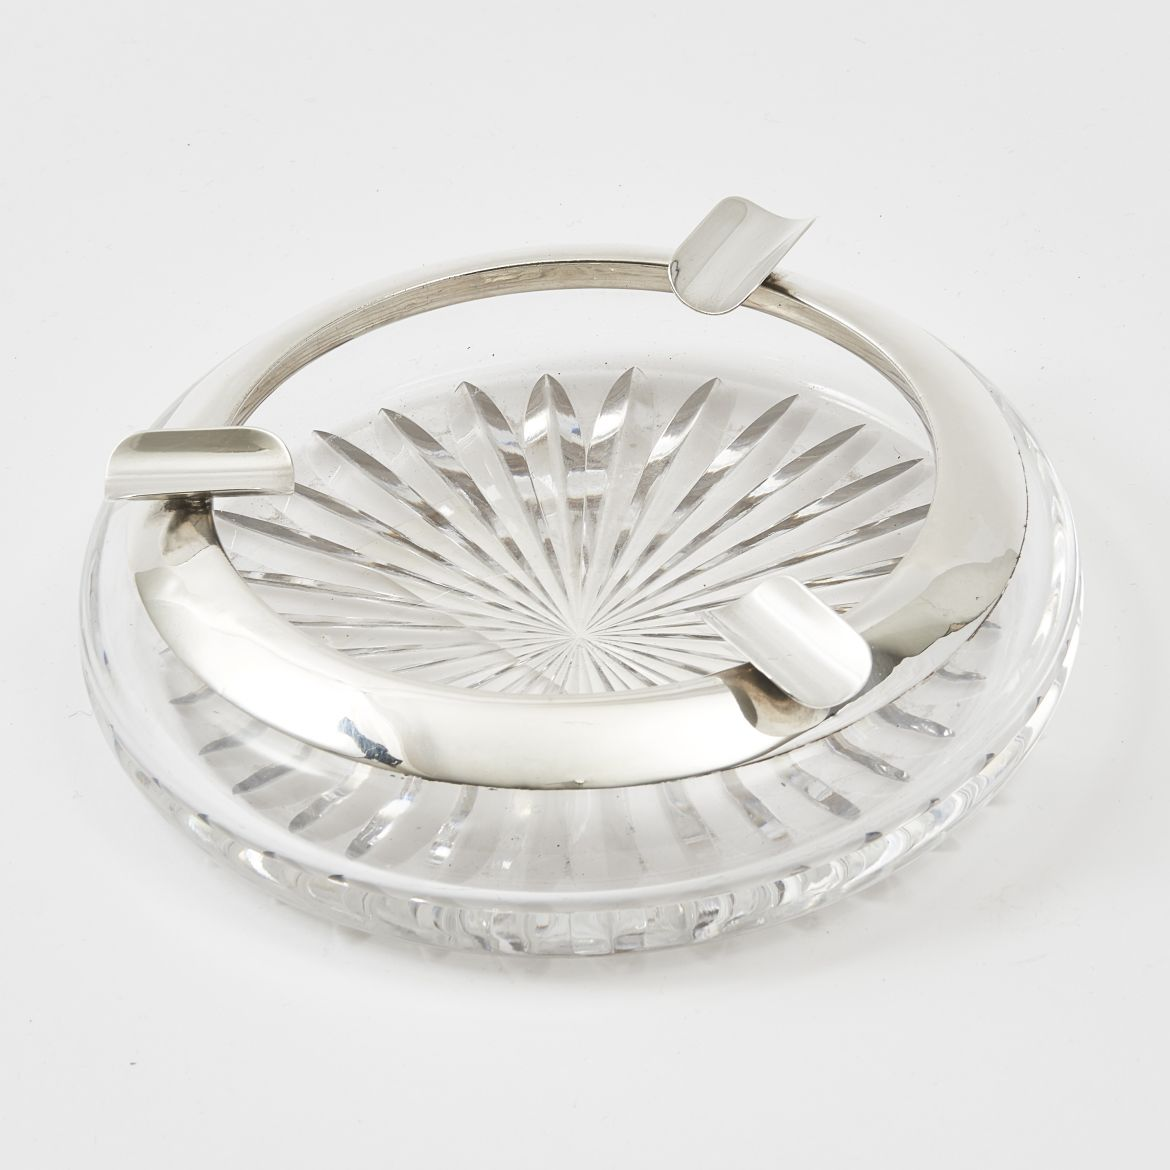 Silver Rim Mid 20th Century Crystal Ashtray